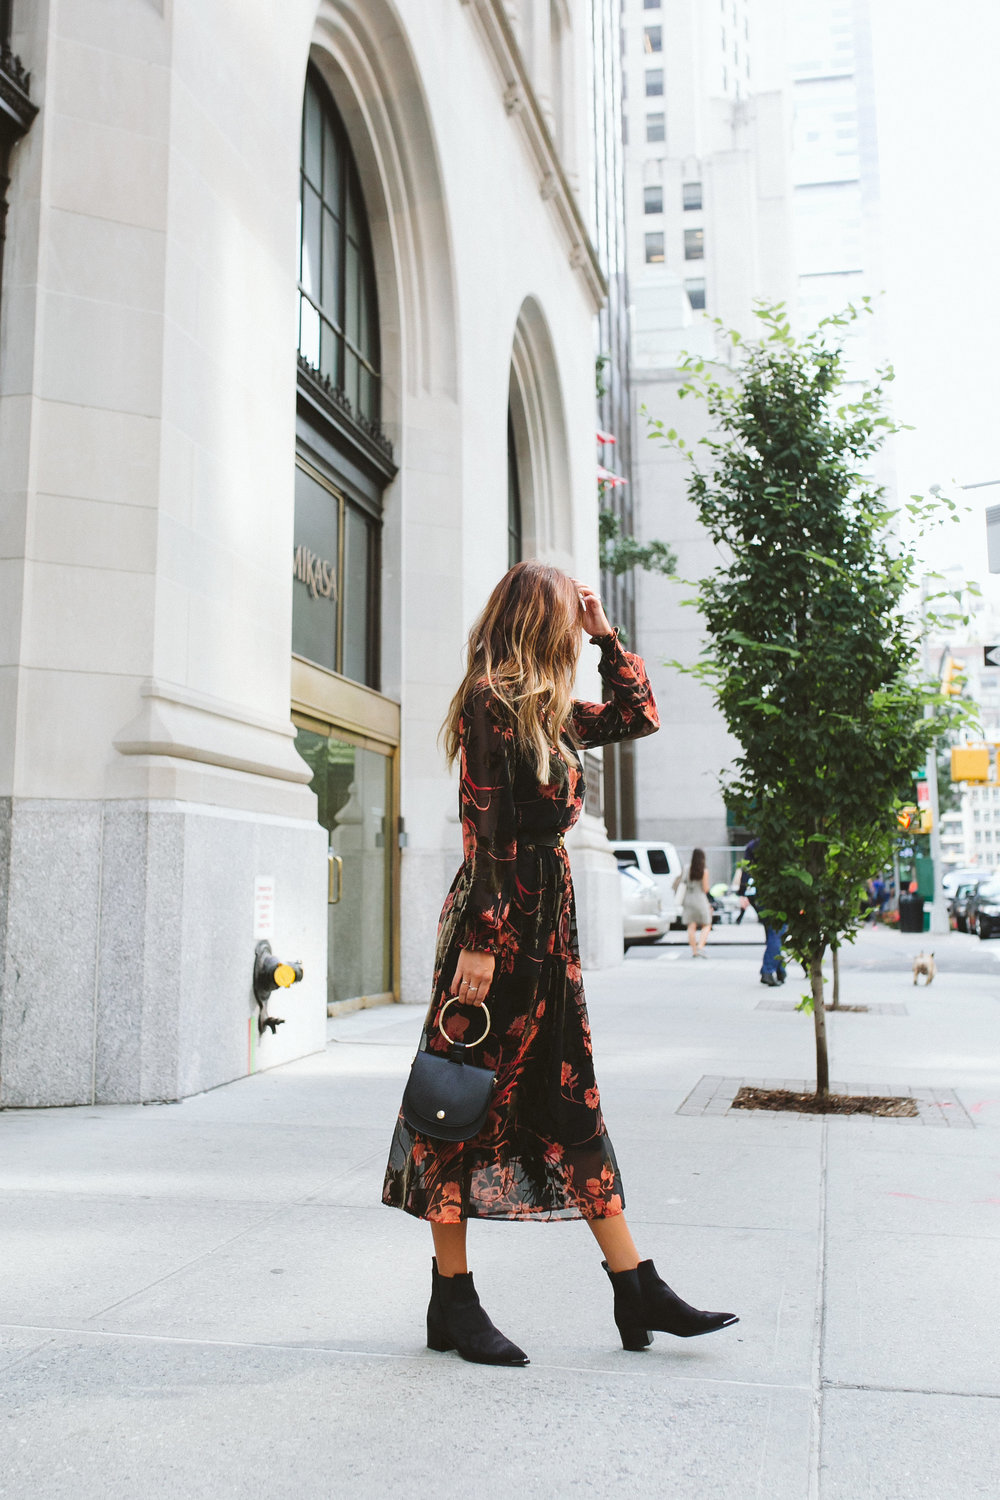 how to pair booties with dress for fall, fall style inspo, everyday pursuits in New York